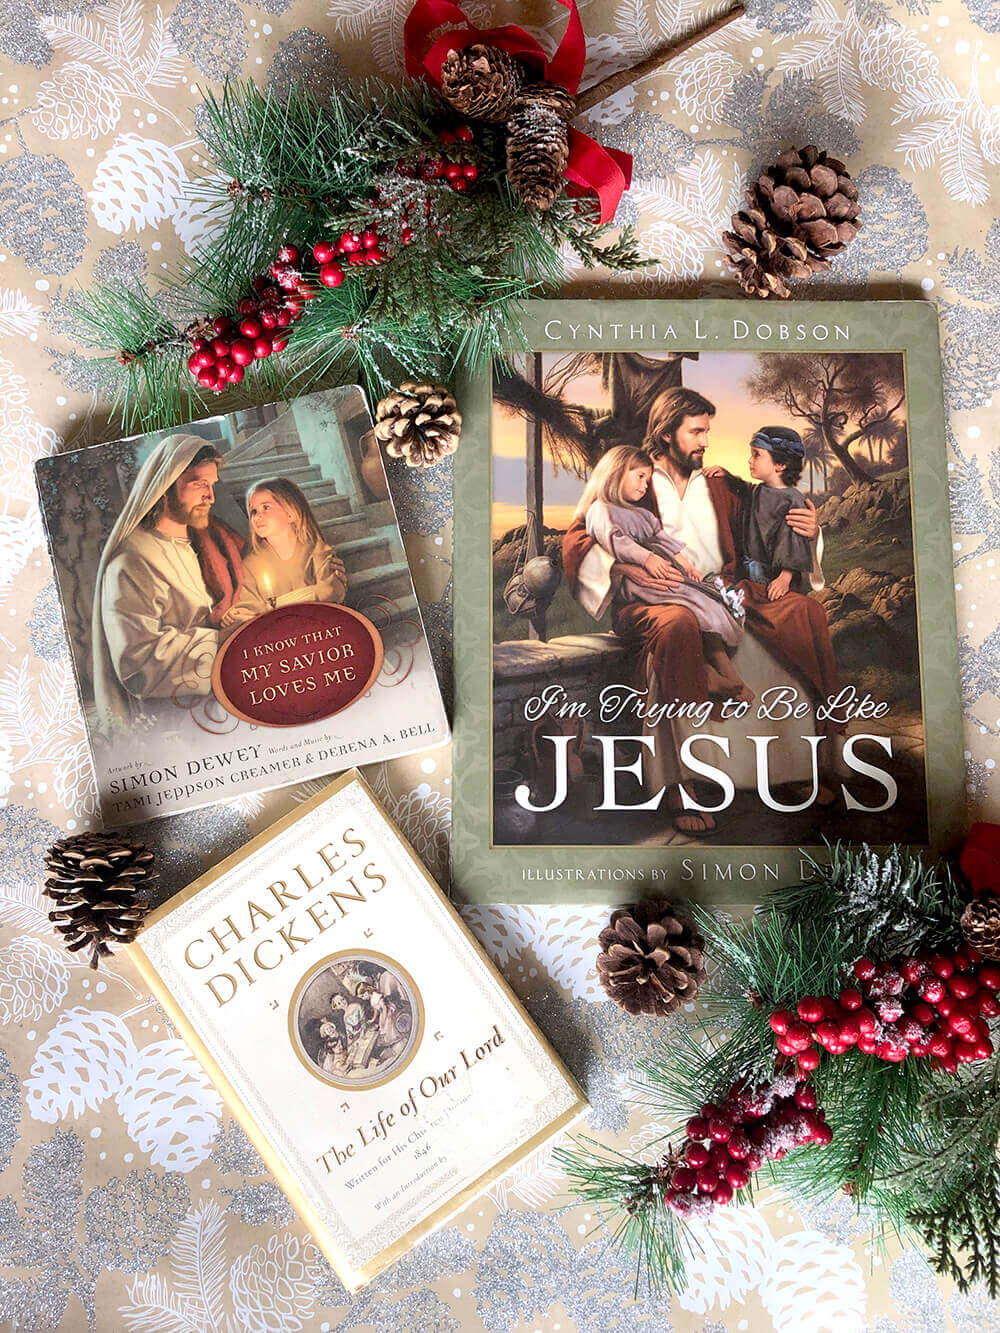 Books about Jesus make great Christmas books